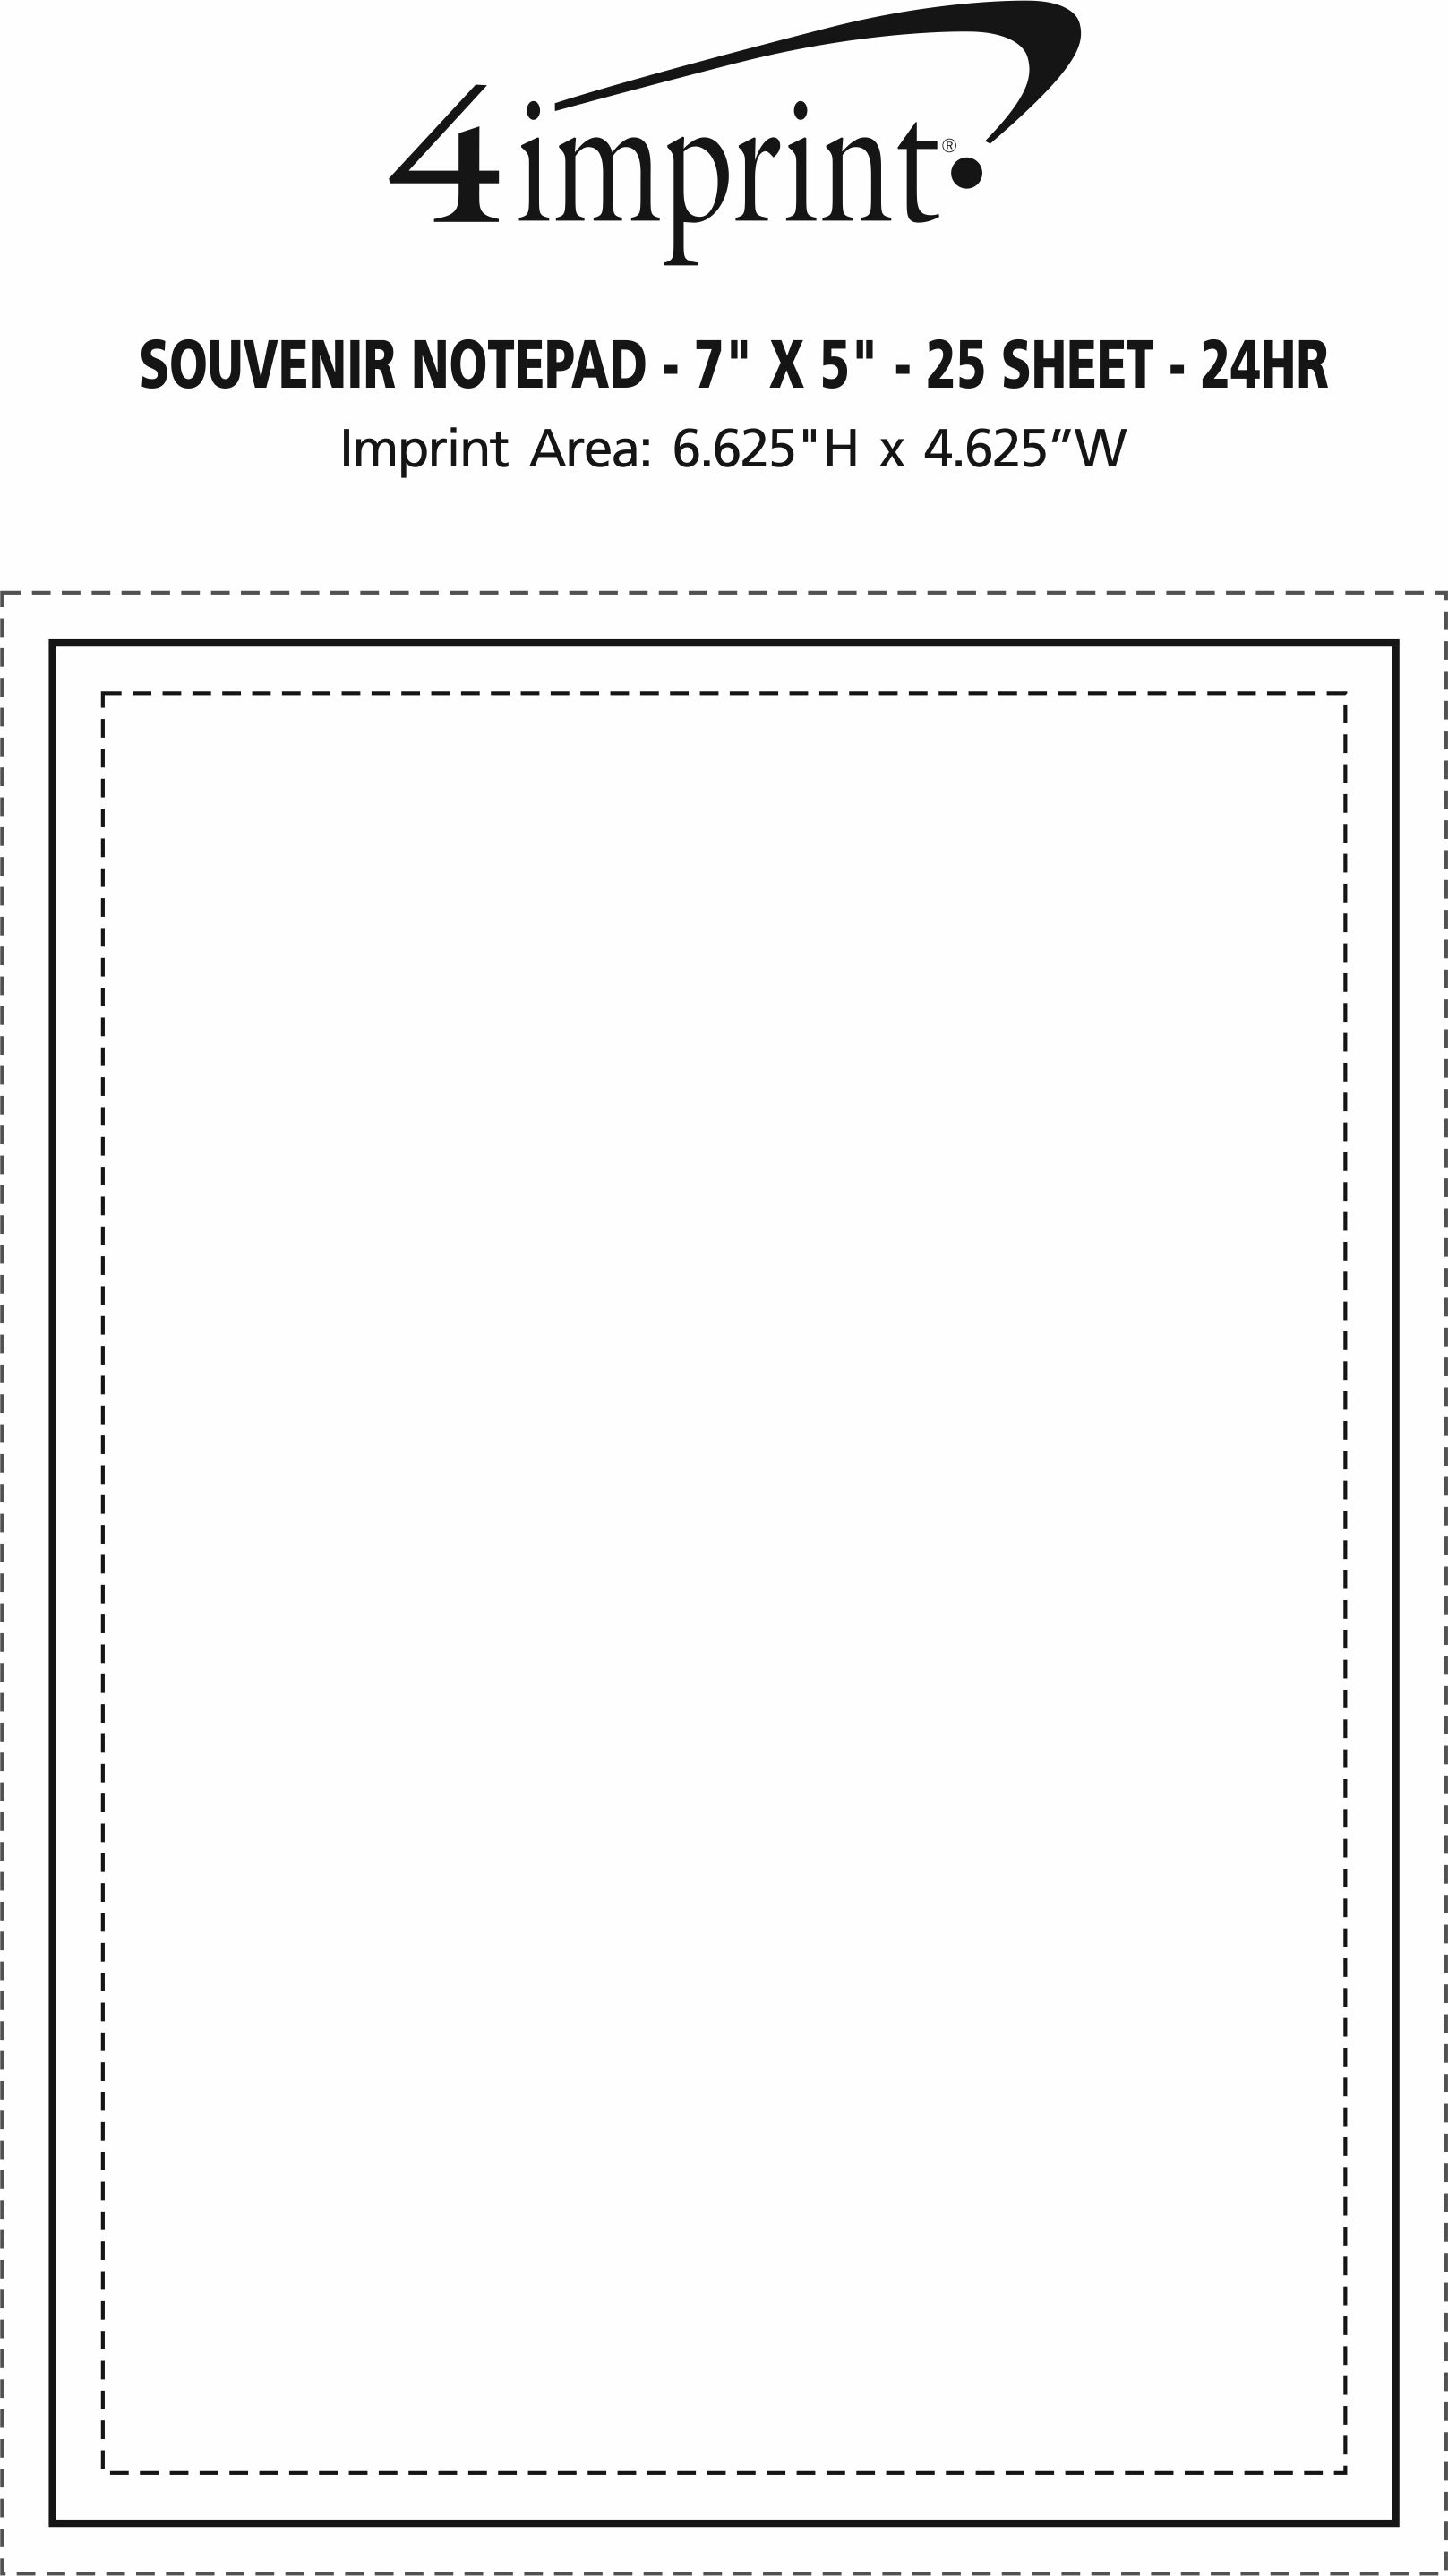 """Imprint Area of Bic Non-Adhesive Notepad - 7"""" x 5"""" - 25 Sheet - 24 hr"""